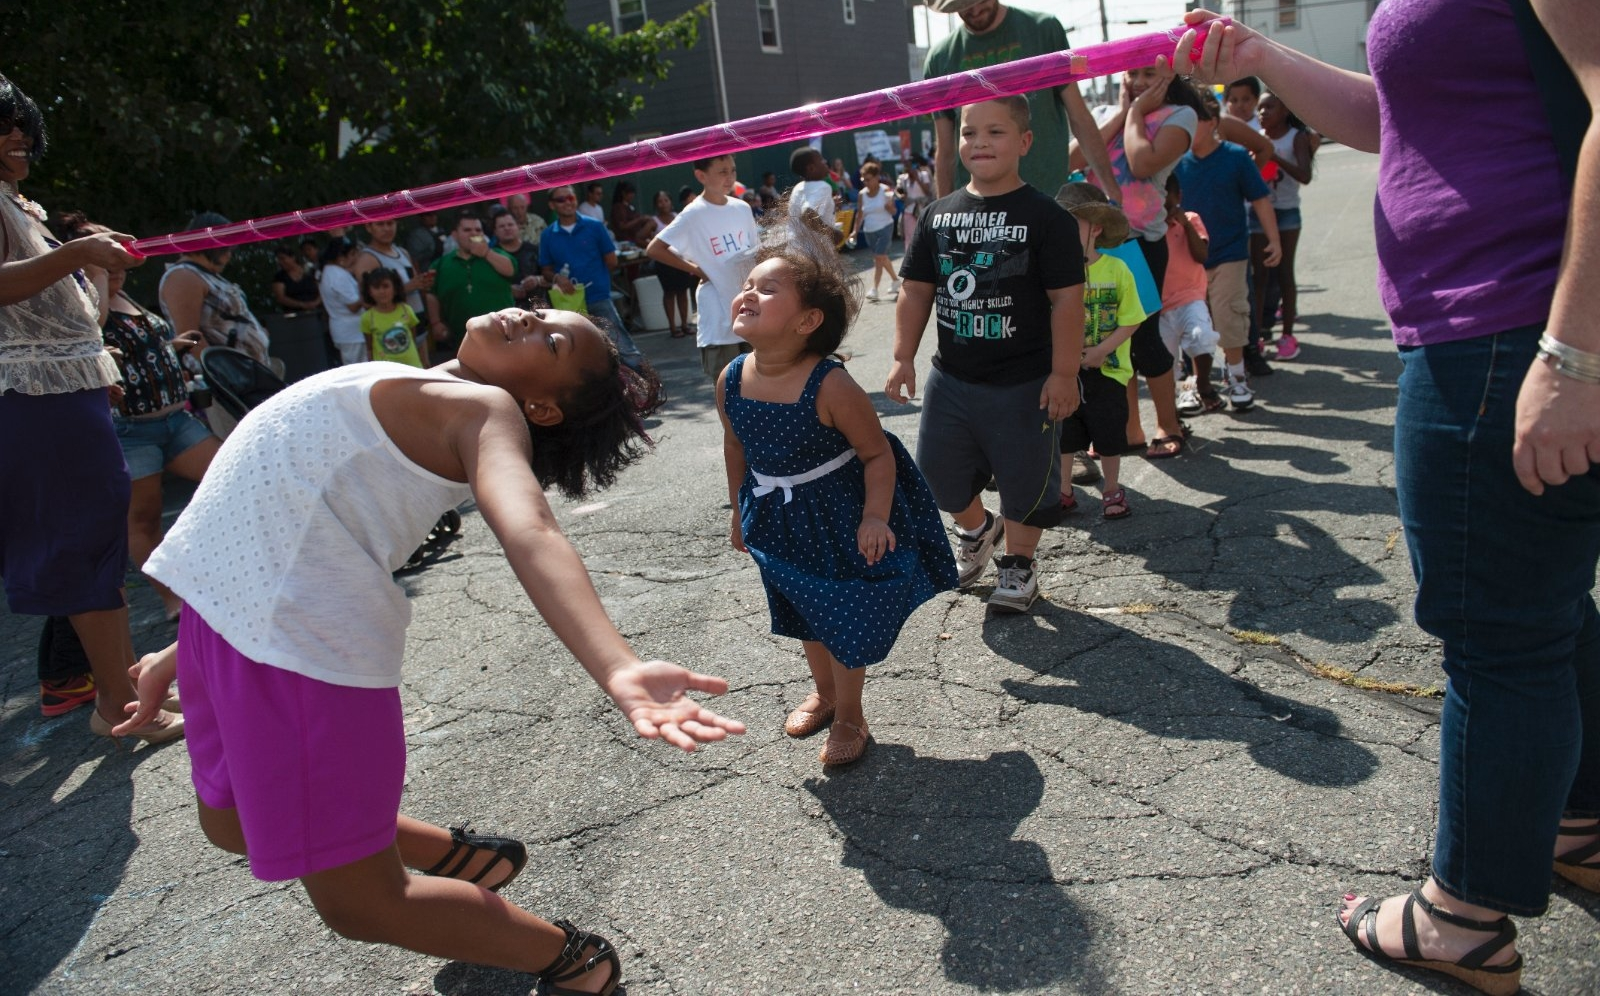 Children participate in the limbo during a block party.